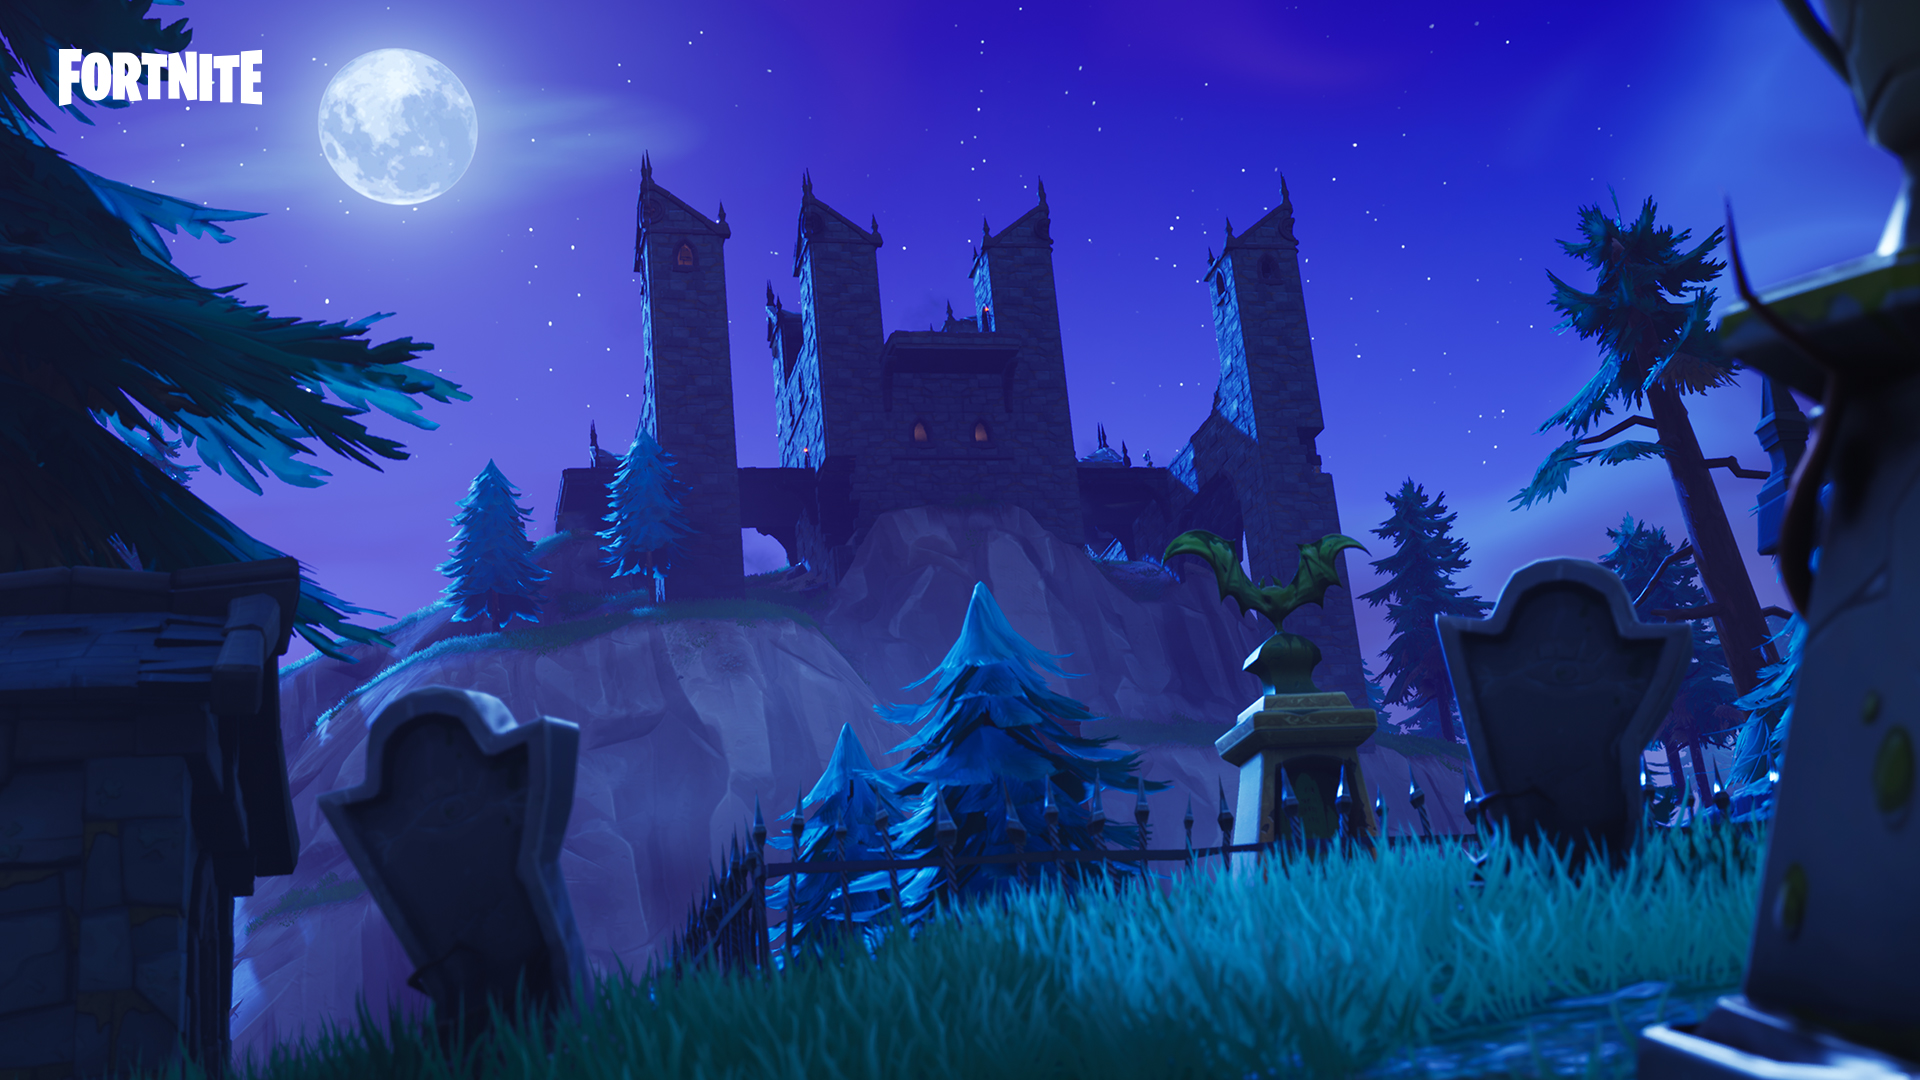 Fortnite Map Wallpapers Posted By Christopher Peltier